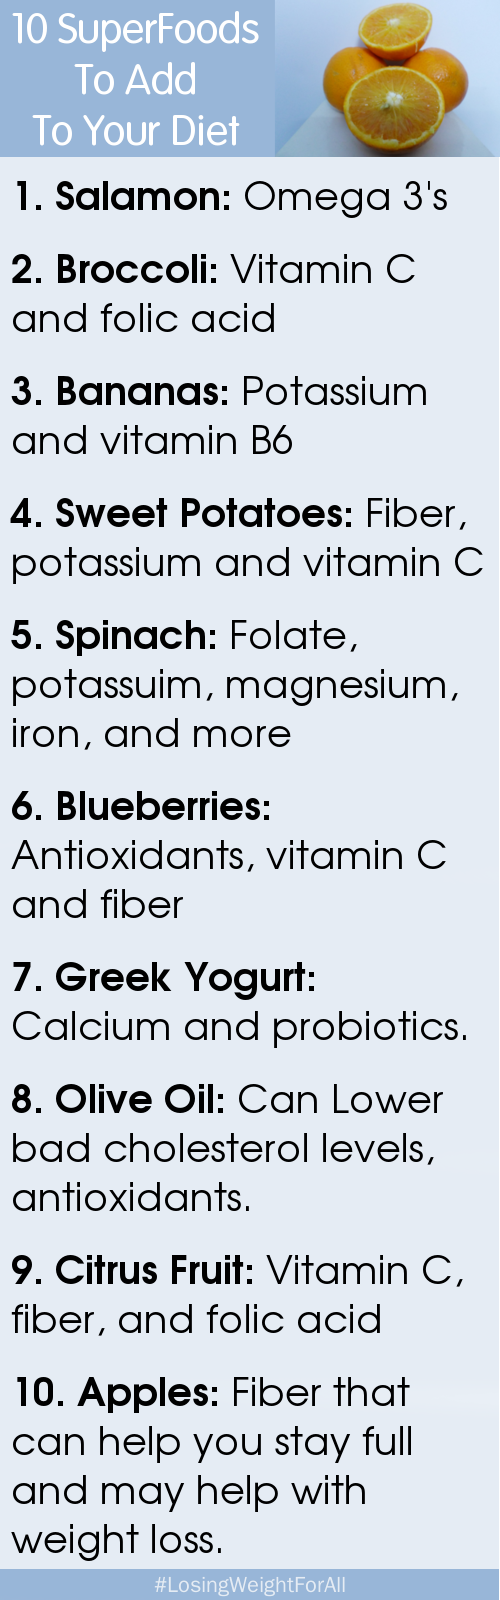 10 SuperFoods Diet Plan